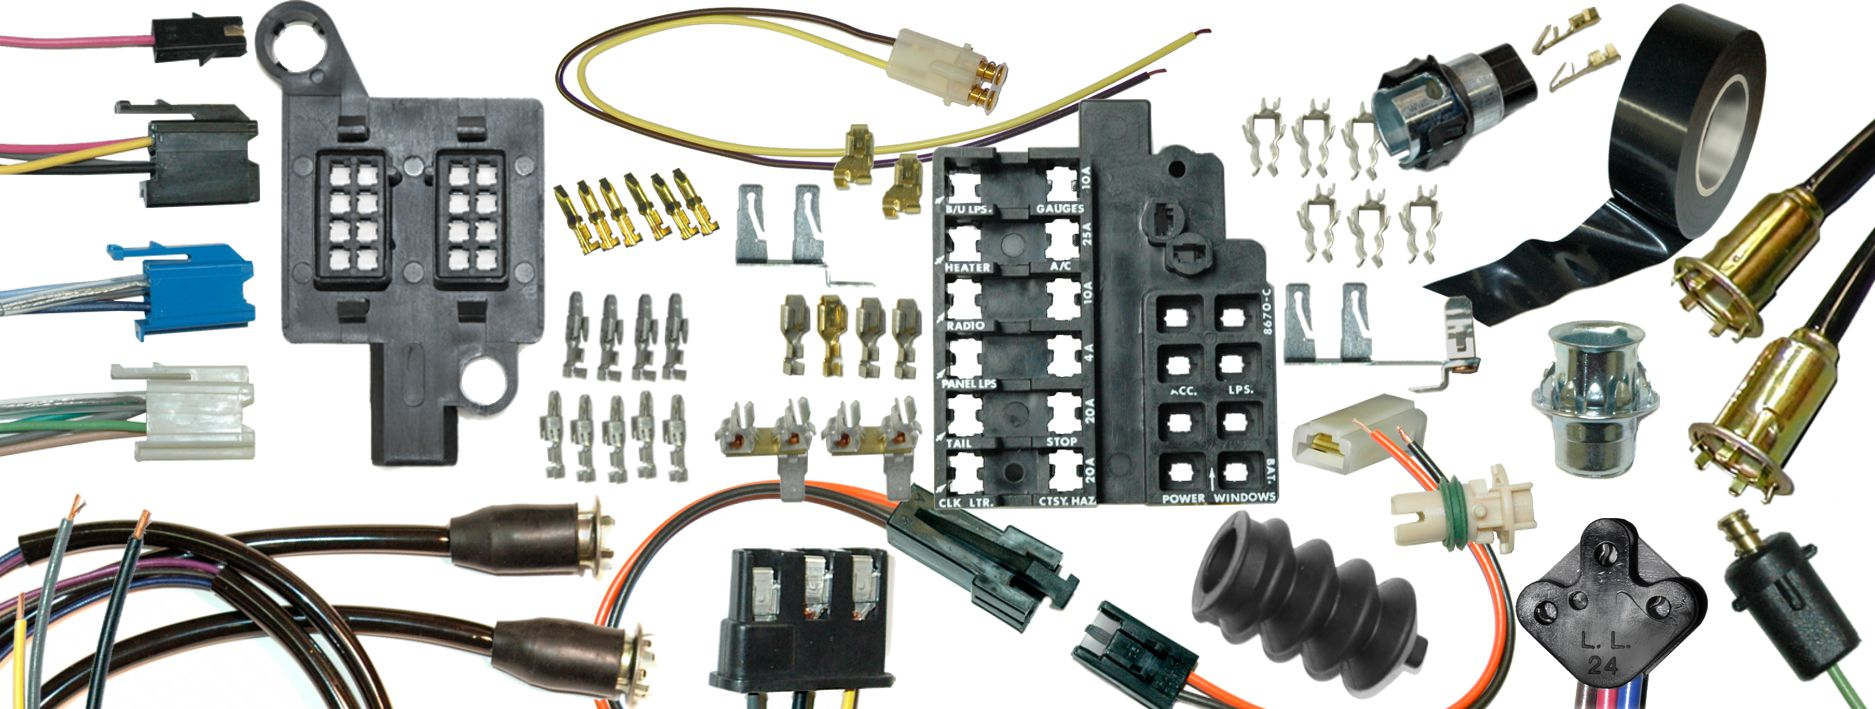 repair components rh lectriclimited com OEM Wiring Harness Connectors OEM Replacement Wiring Harness